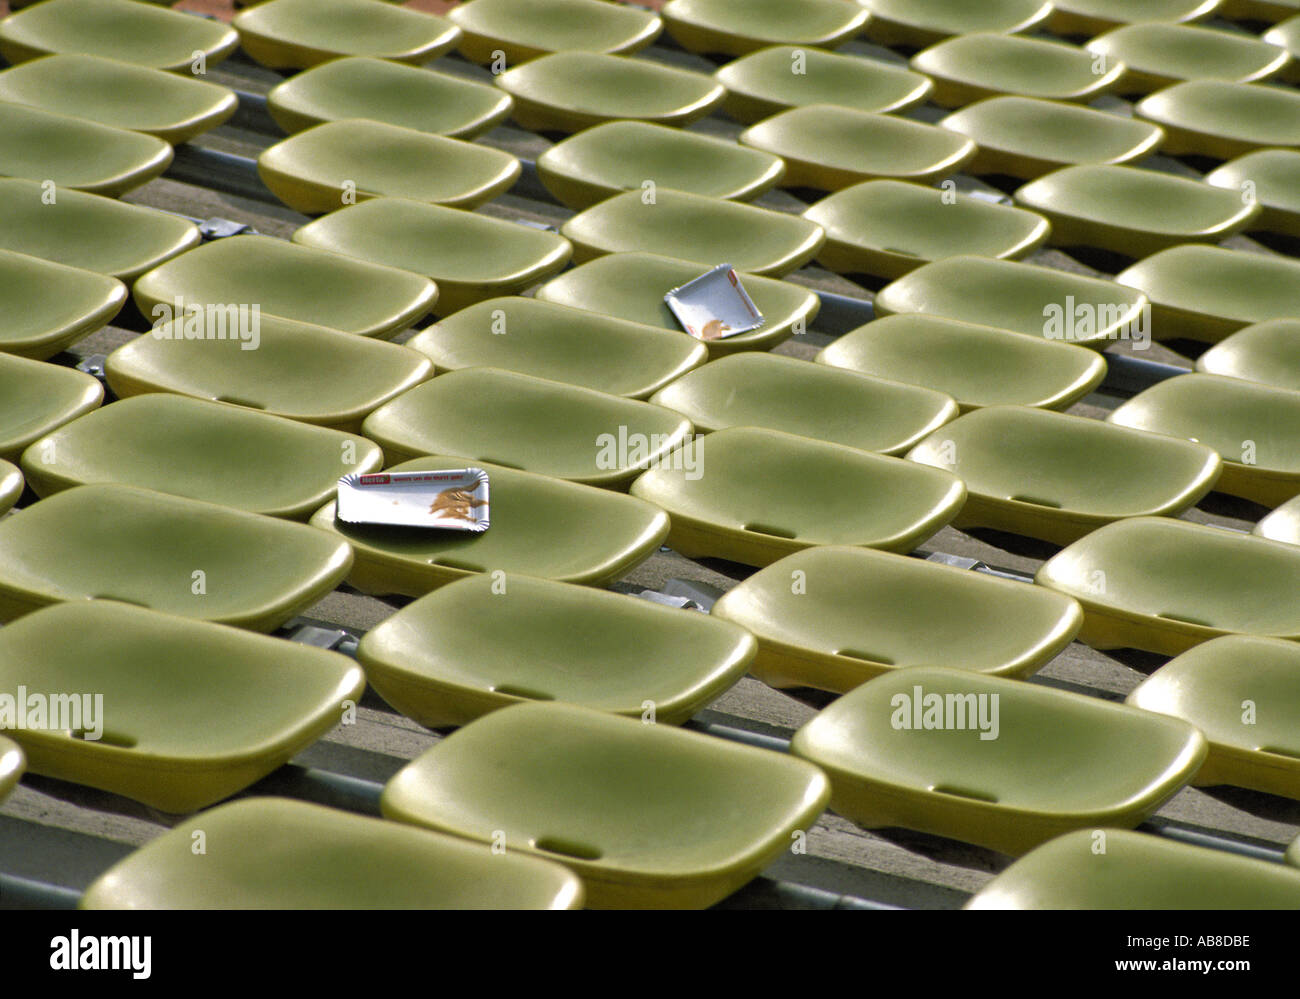 Seats in a stadium - Stock Image